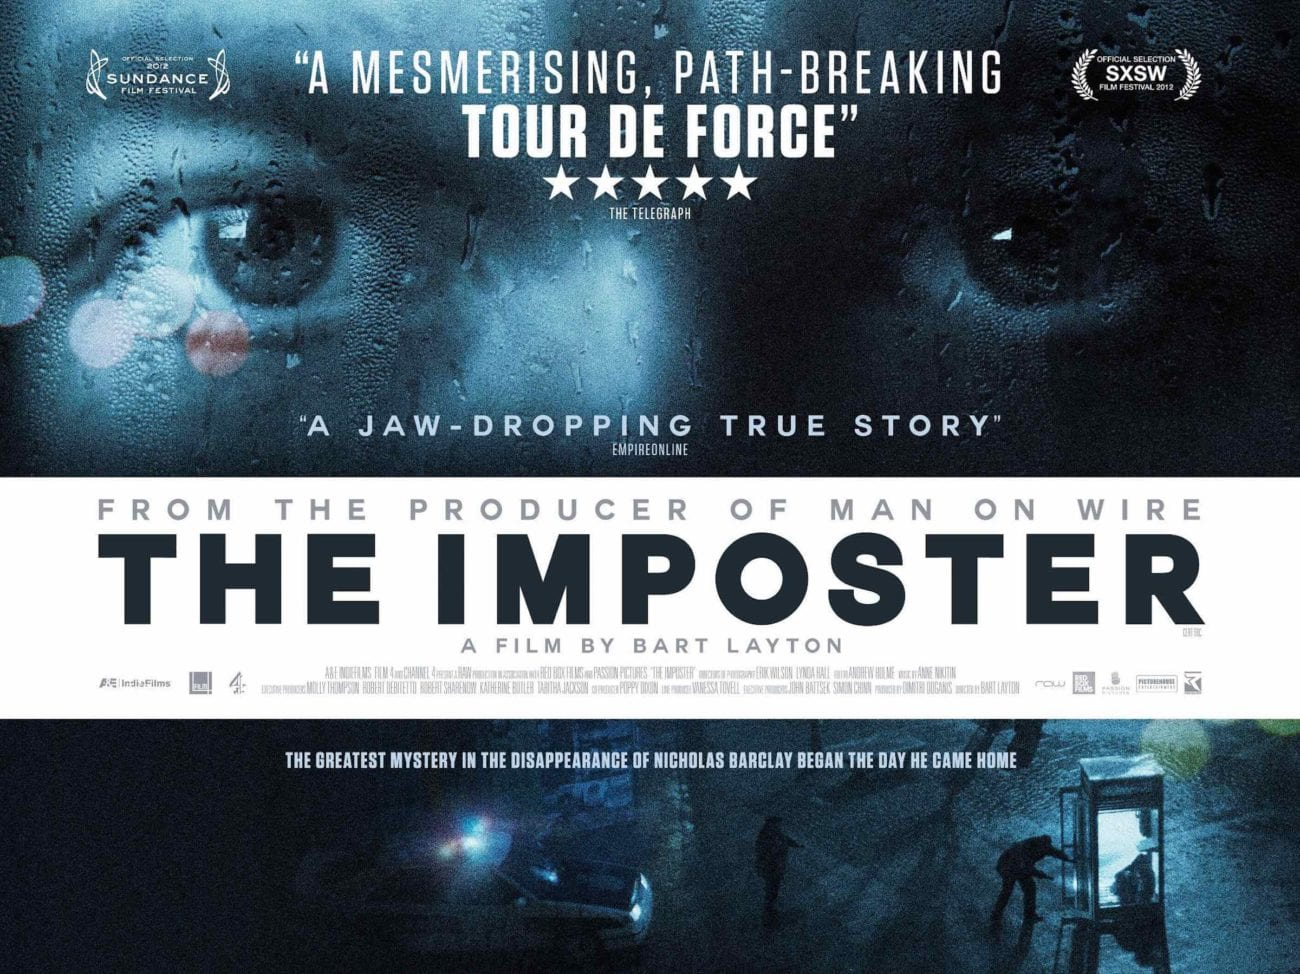 The Netflix documentary 'The Imposter' may be one of the most twisty true crime stories we've ever encountered. Here's why.